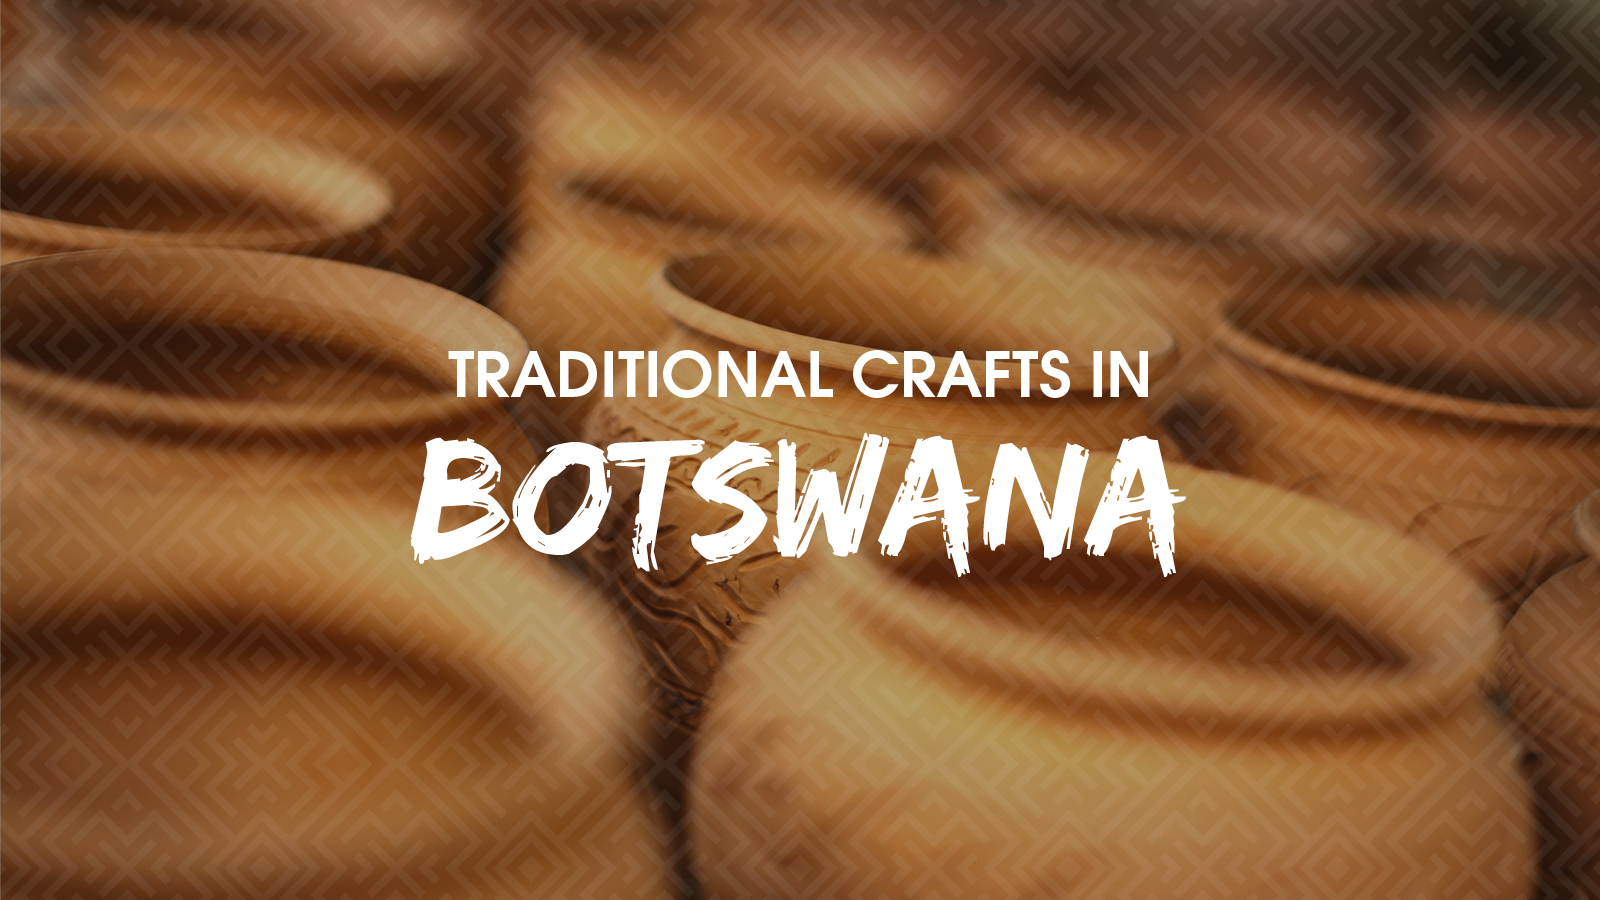 Traditional crafts in Botswana - Pottery and wooden crafts_blog image